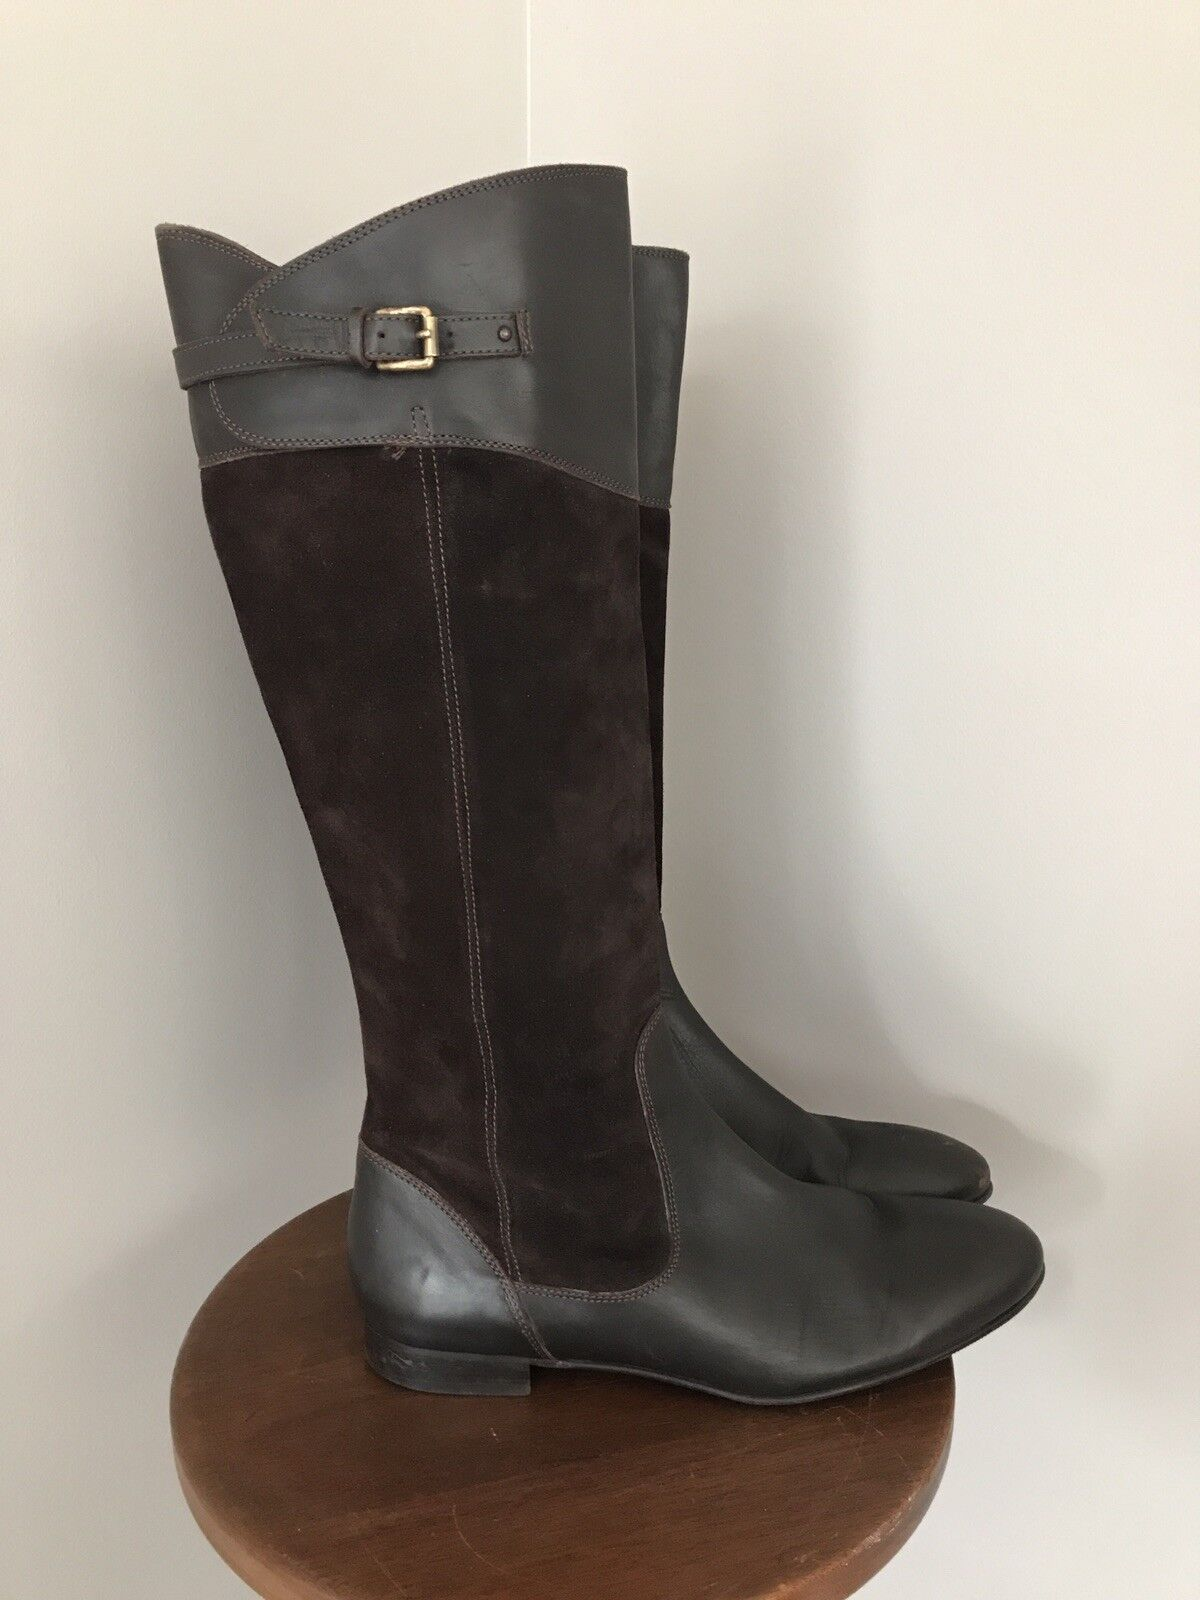 J Crew Brown Suede And Leather Tall Riding Boot Full Side Zip Women s US 8M - $58.00